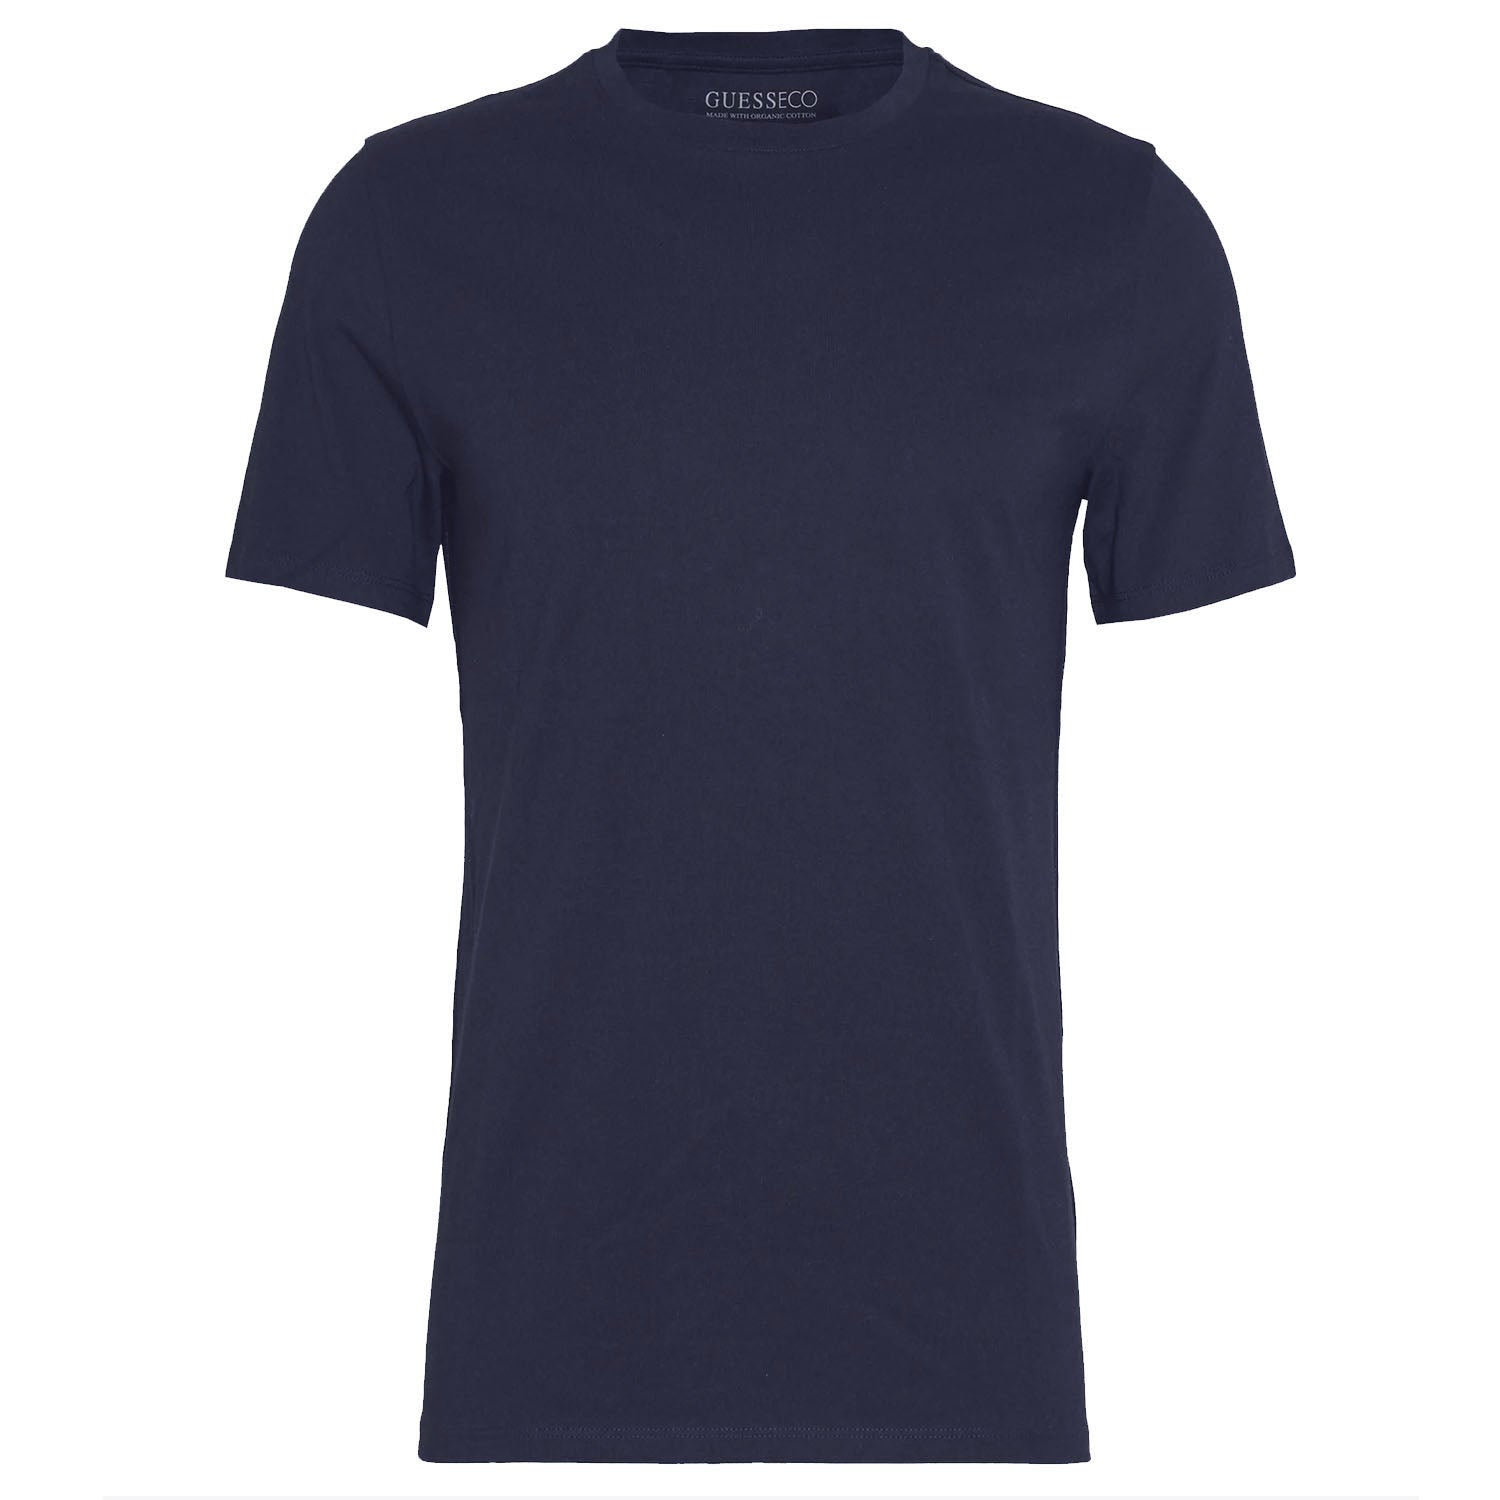 Guess Super Slim Fit Plain T-Shirt